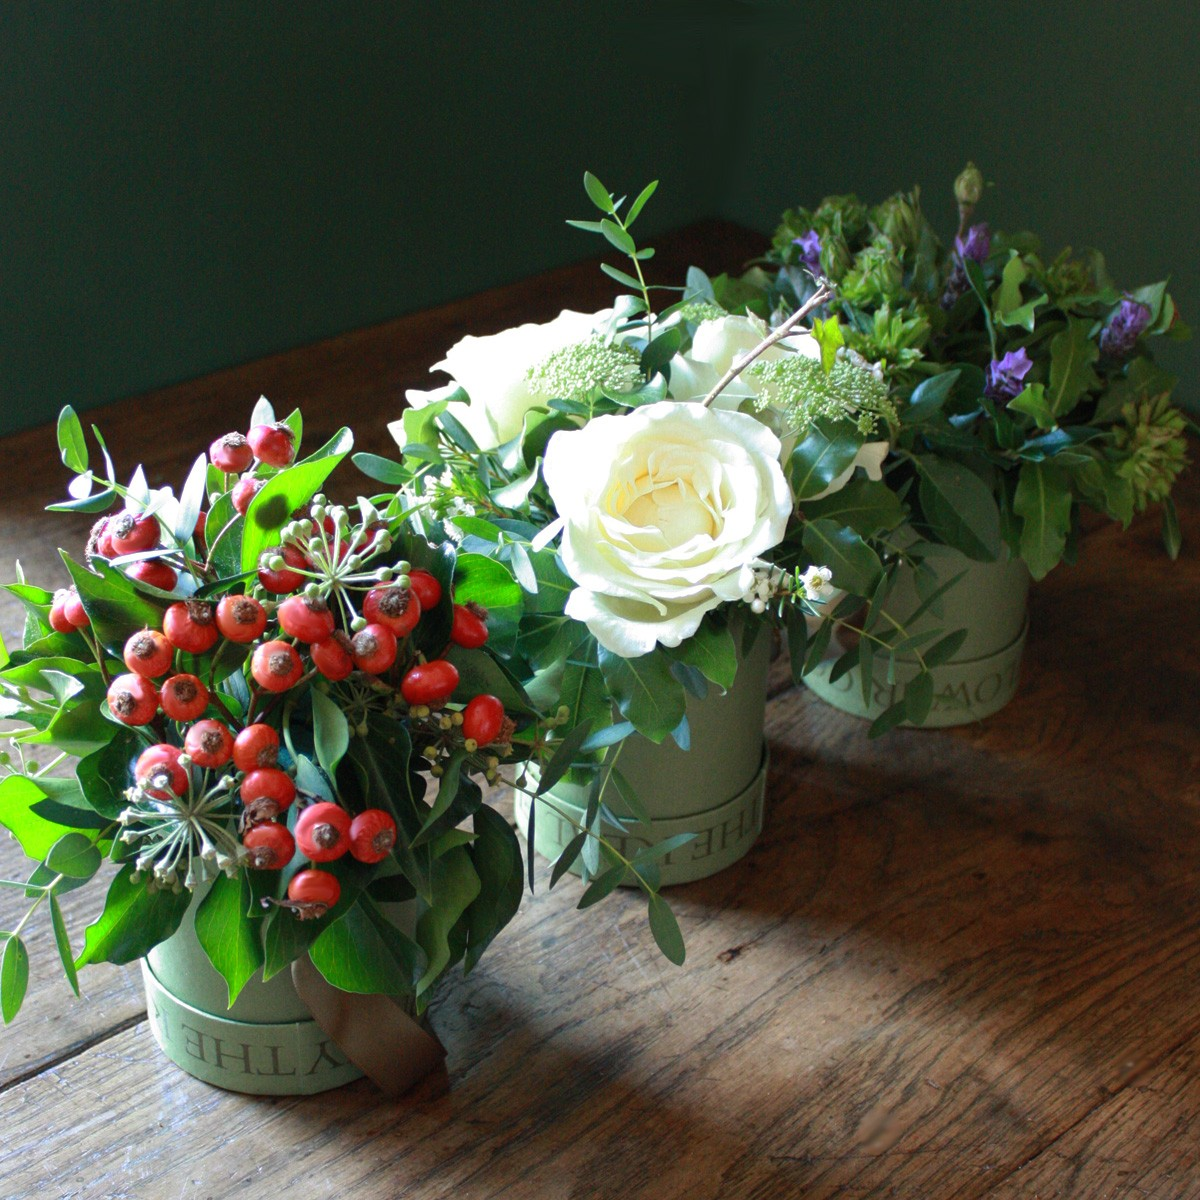 Festive Florals Seasonal Flower Arrangements For Christmas Time